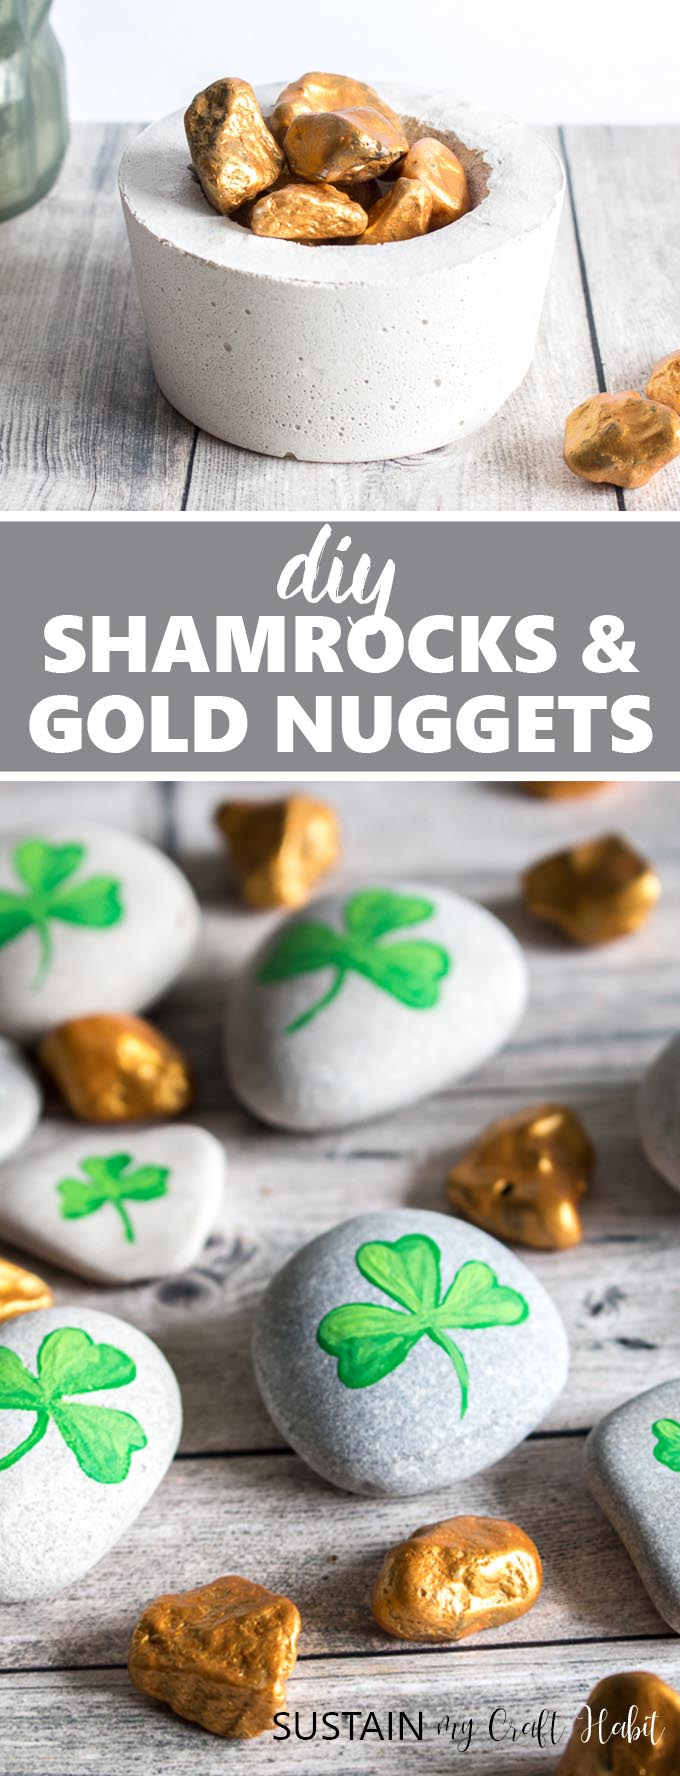 Collage of images showing the completed painted gold nuggets and shamrock stones for St. Patrick's Day.